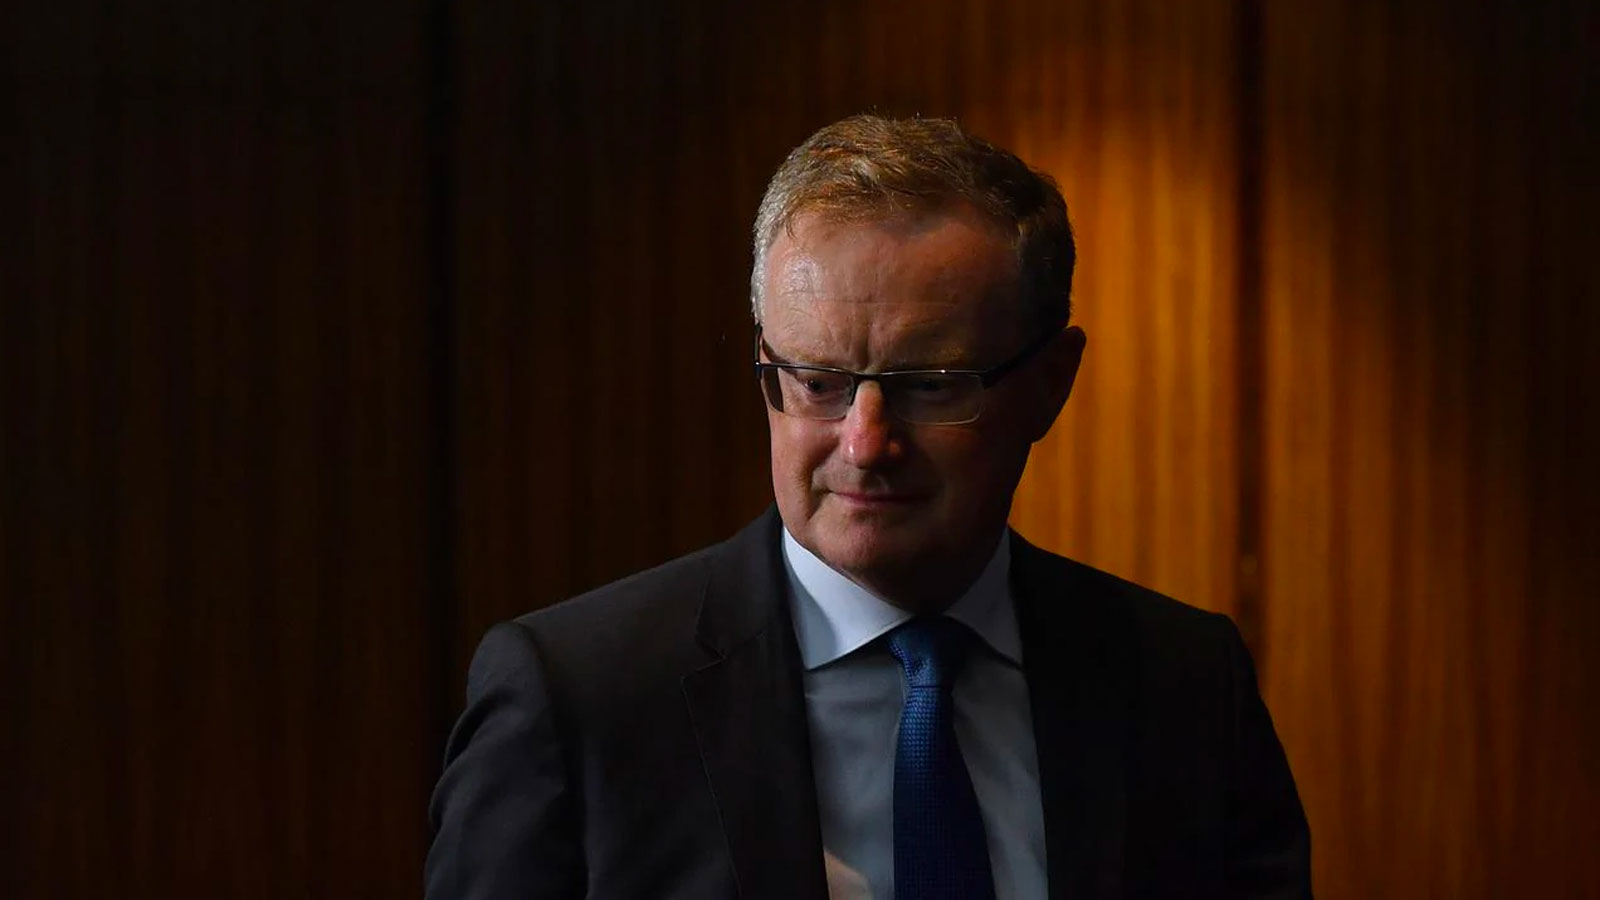 ▲ RBA governor Philip Lowe said getting unemployment down was the bank's central task.